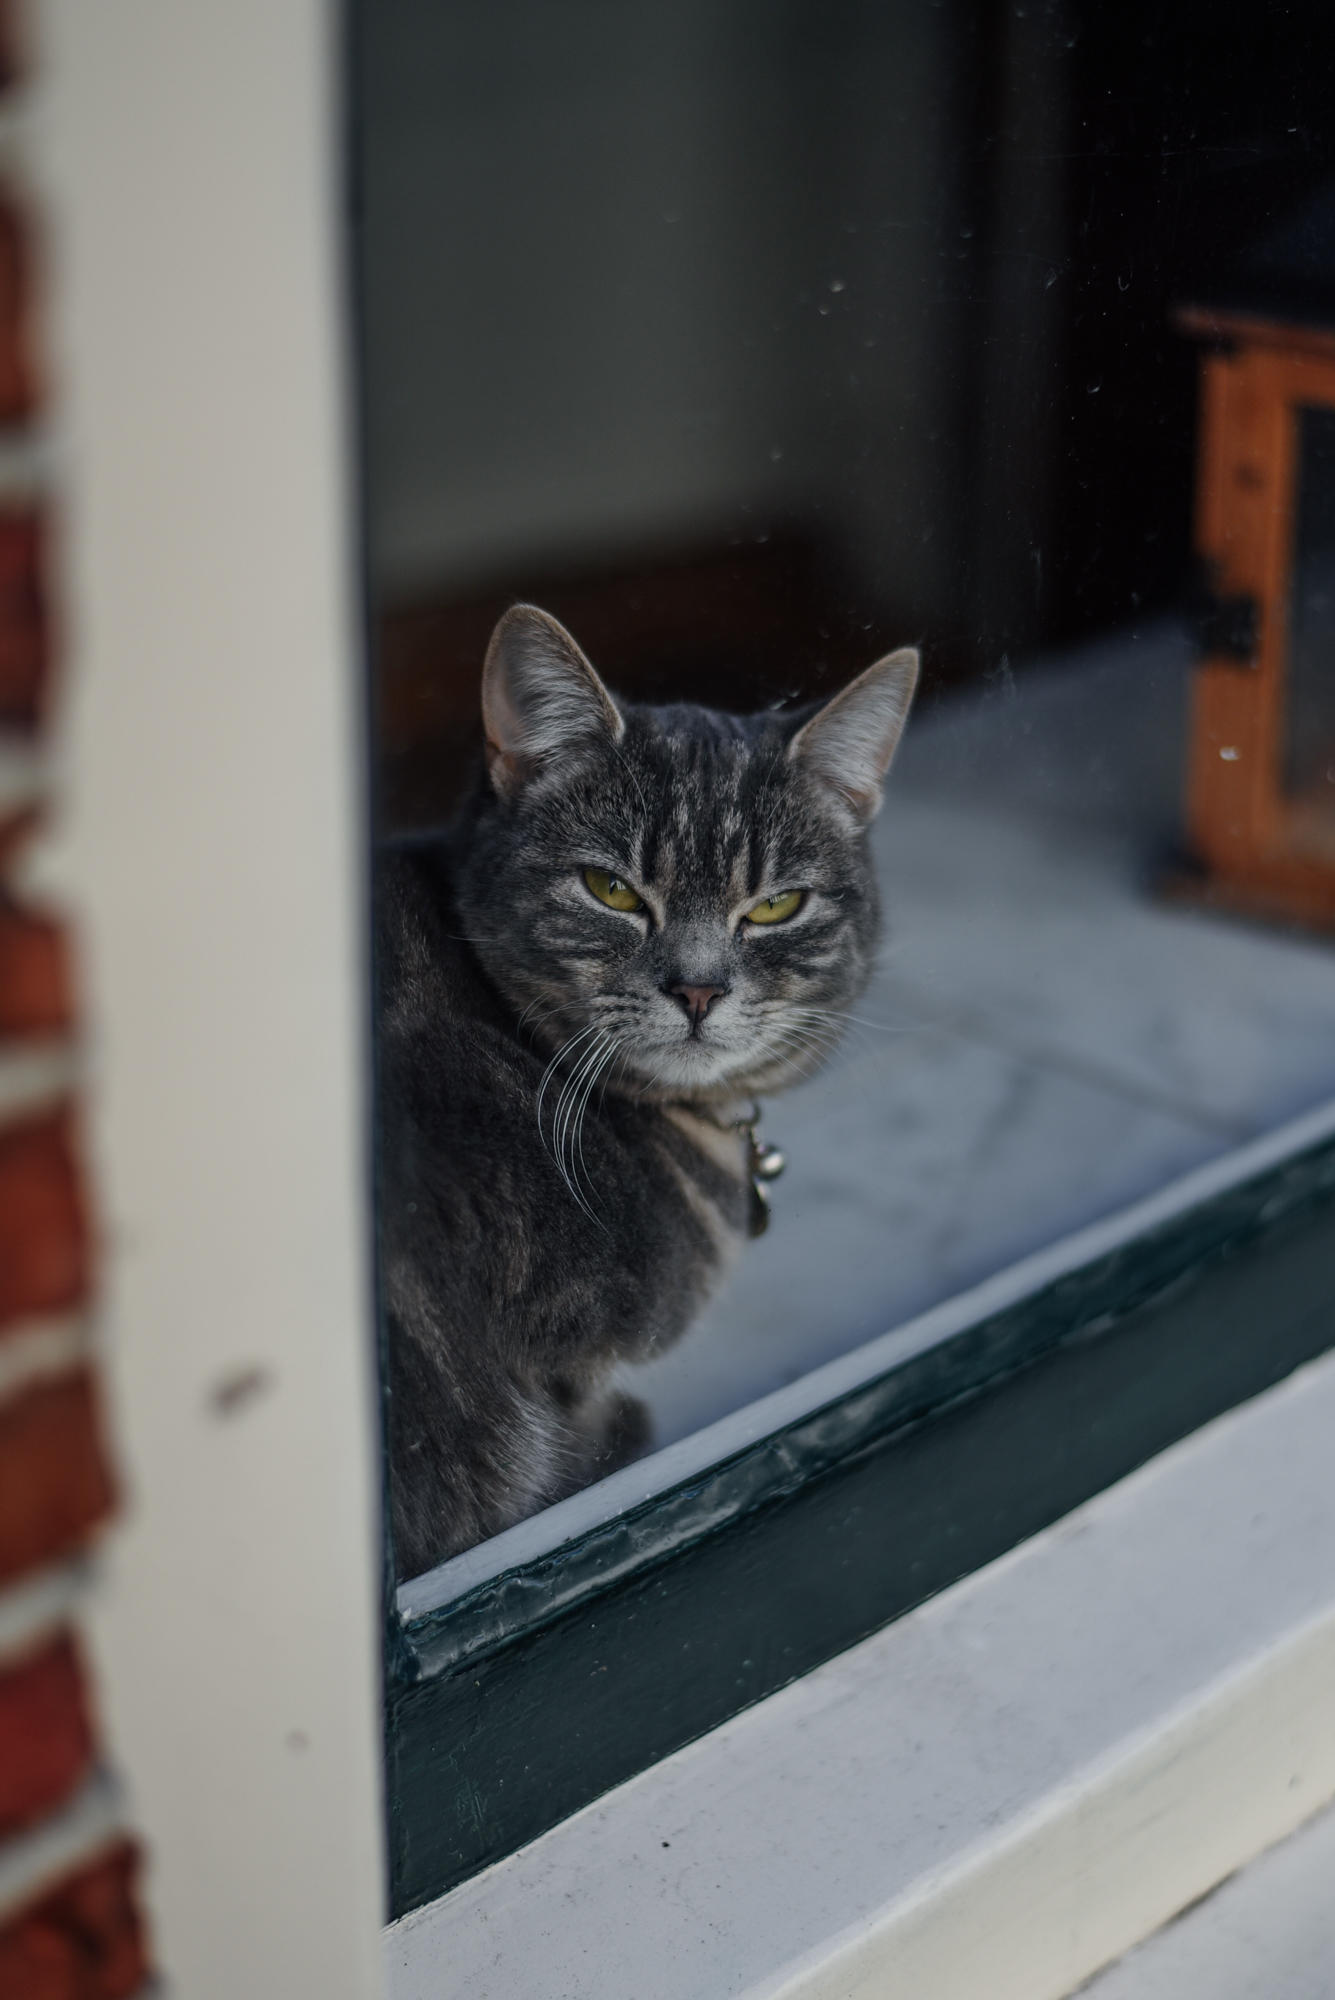 Cat behind a window in The Netherlands